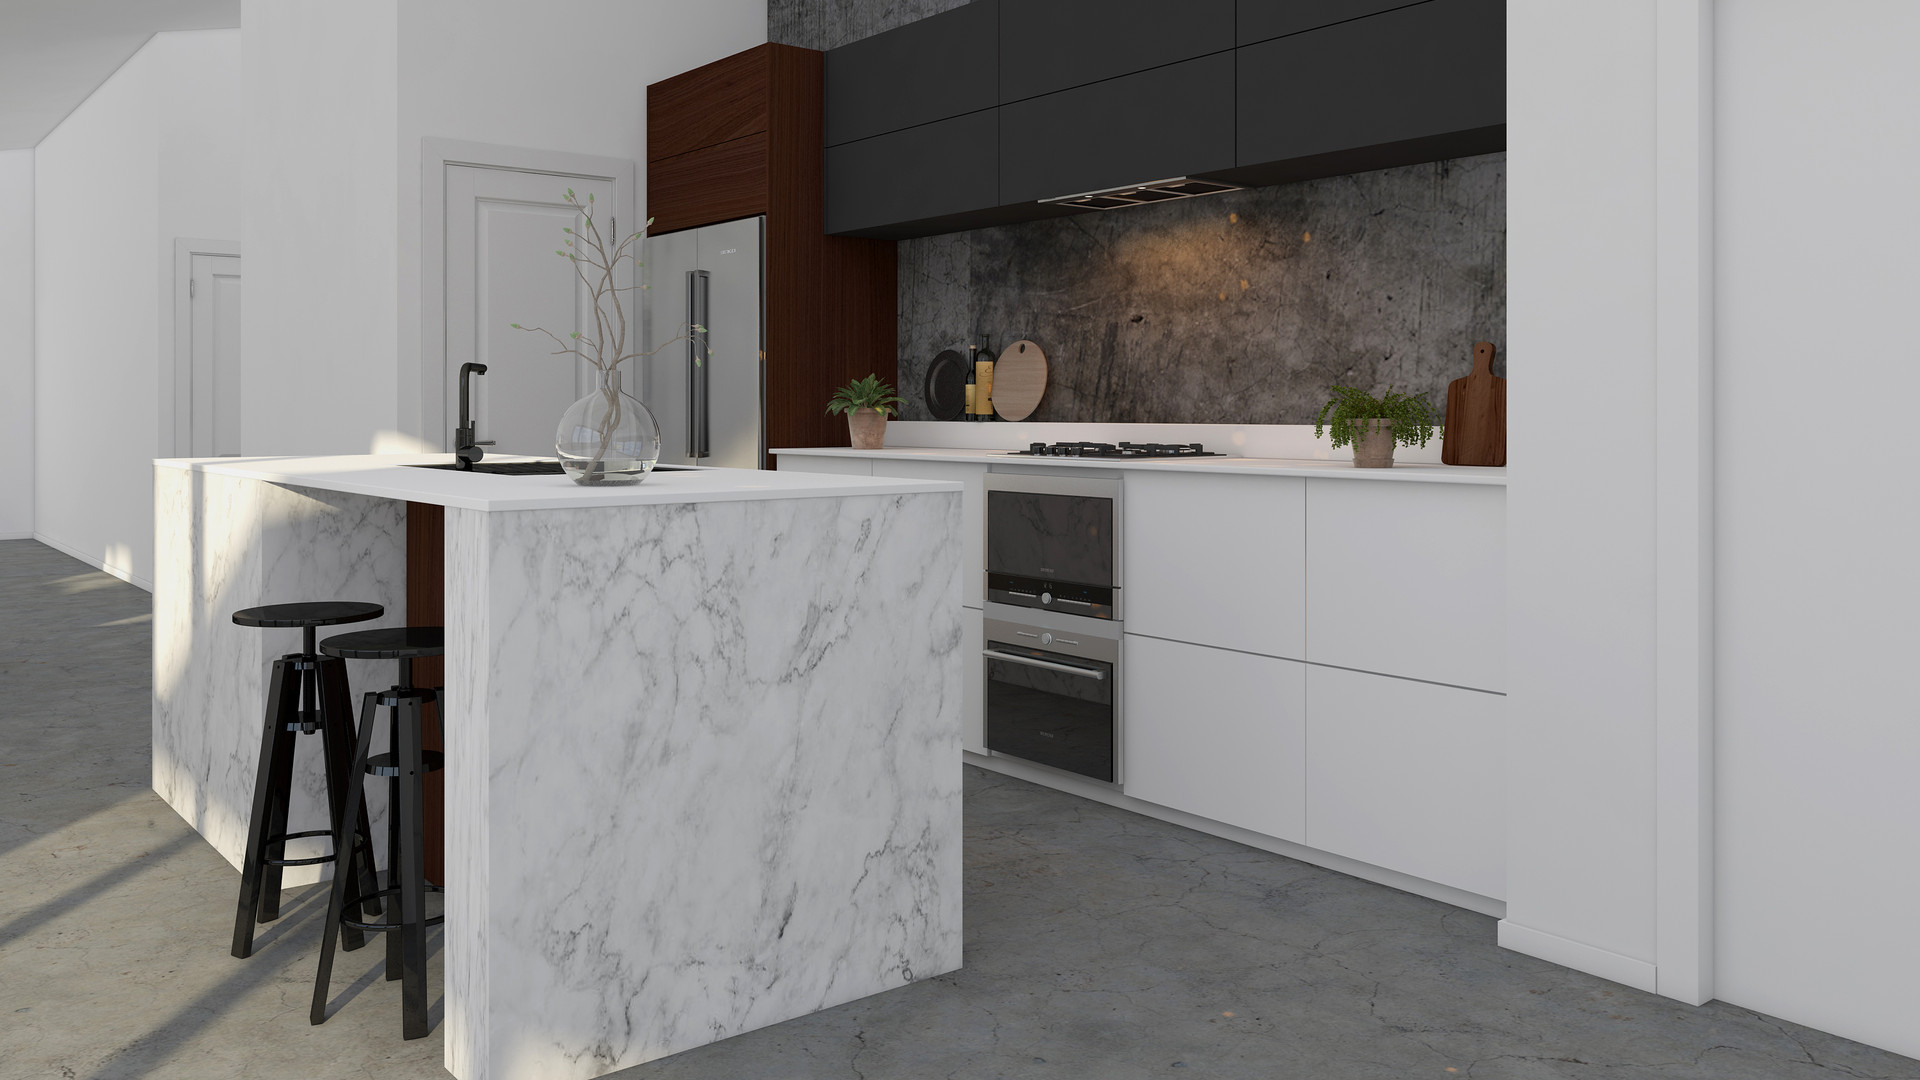 Rolleston interior render